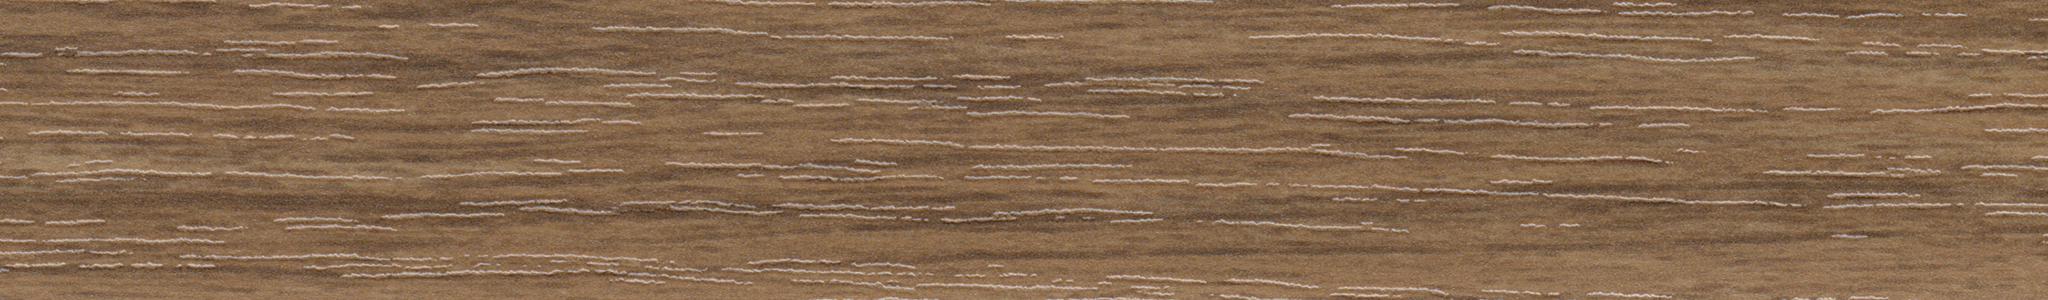 HD 283105 ABS Edge Walnut Saleve Pore